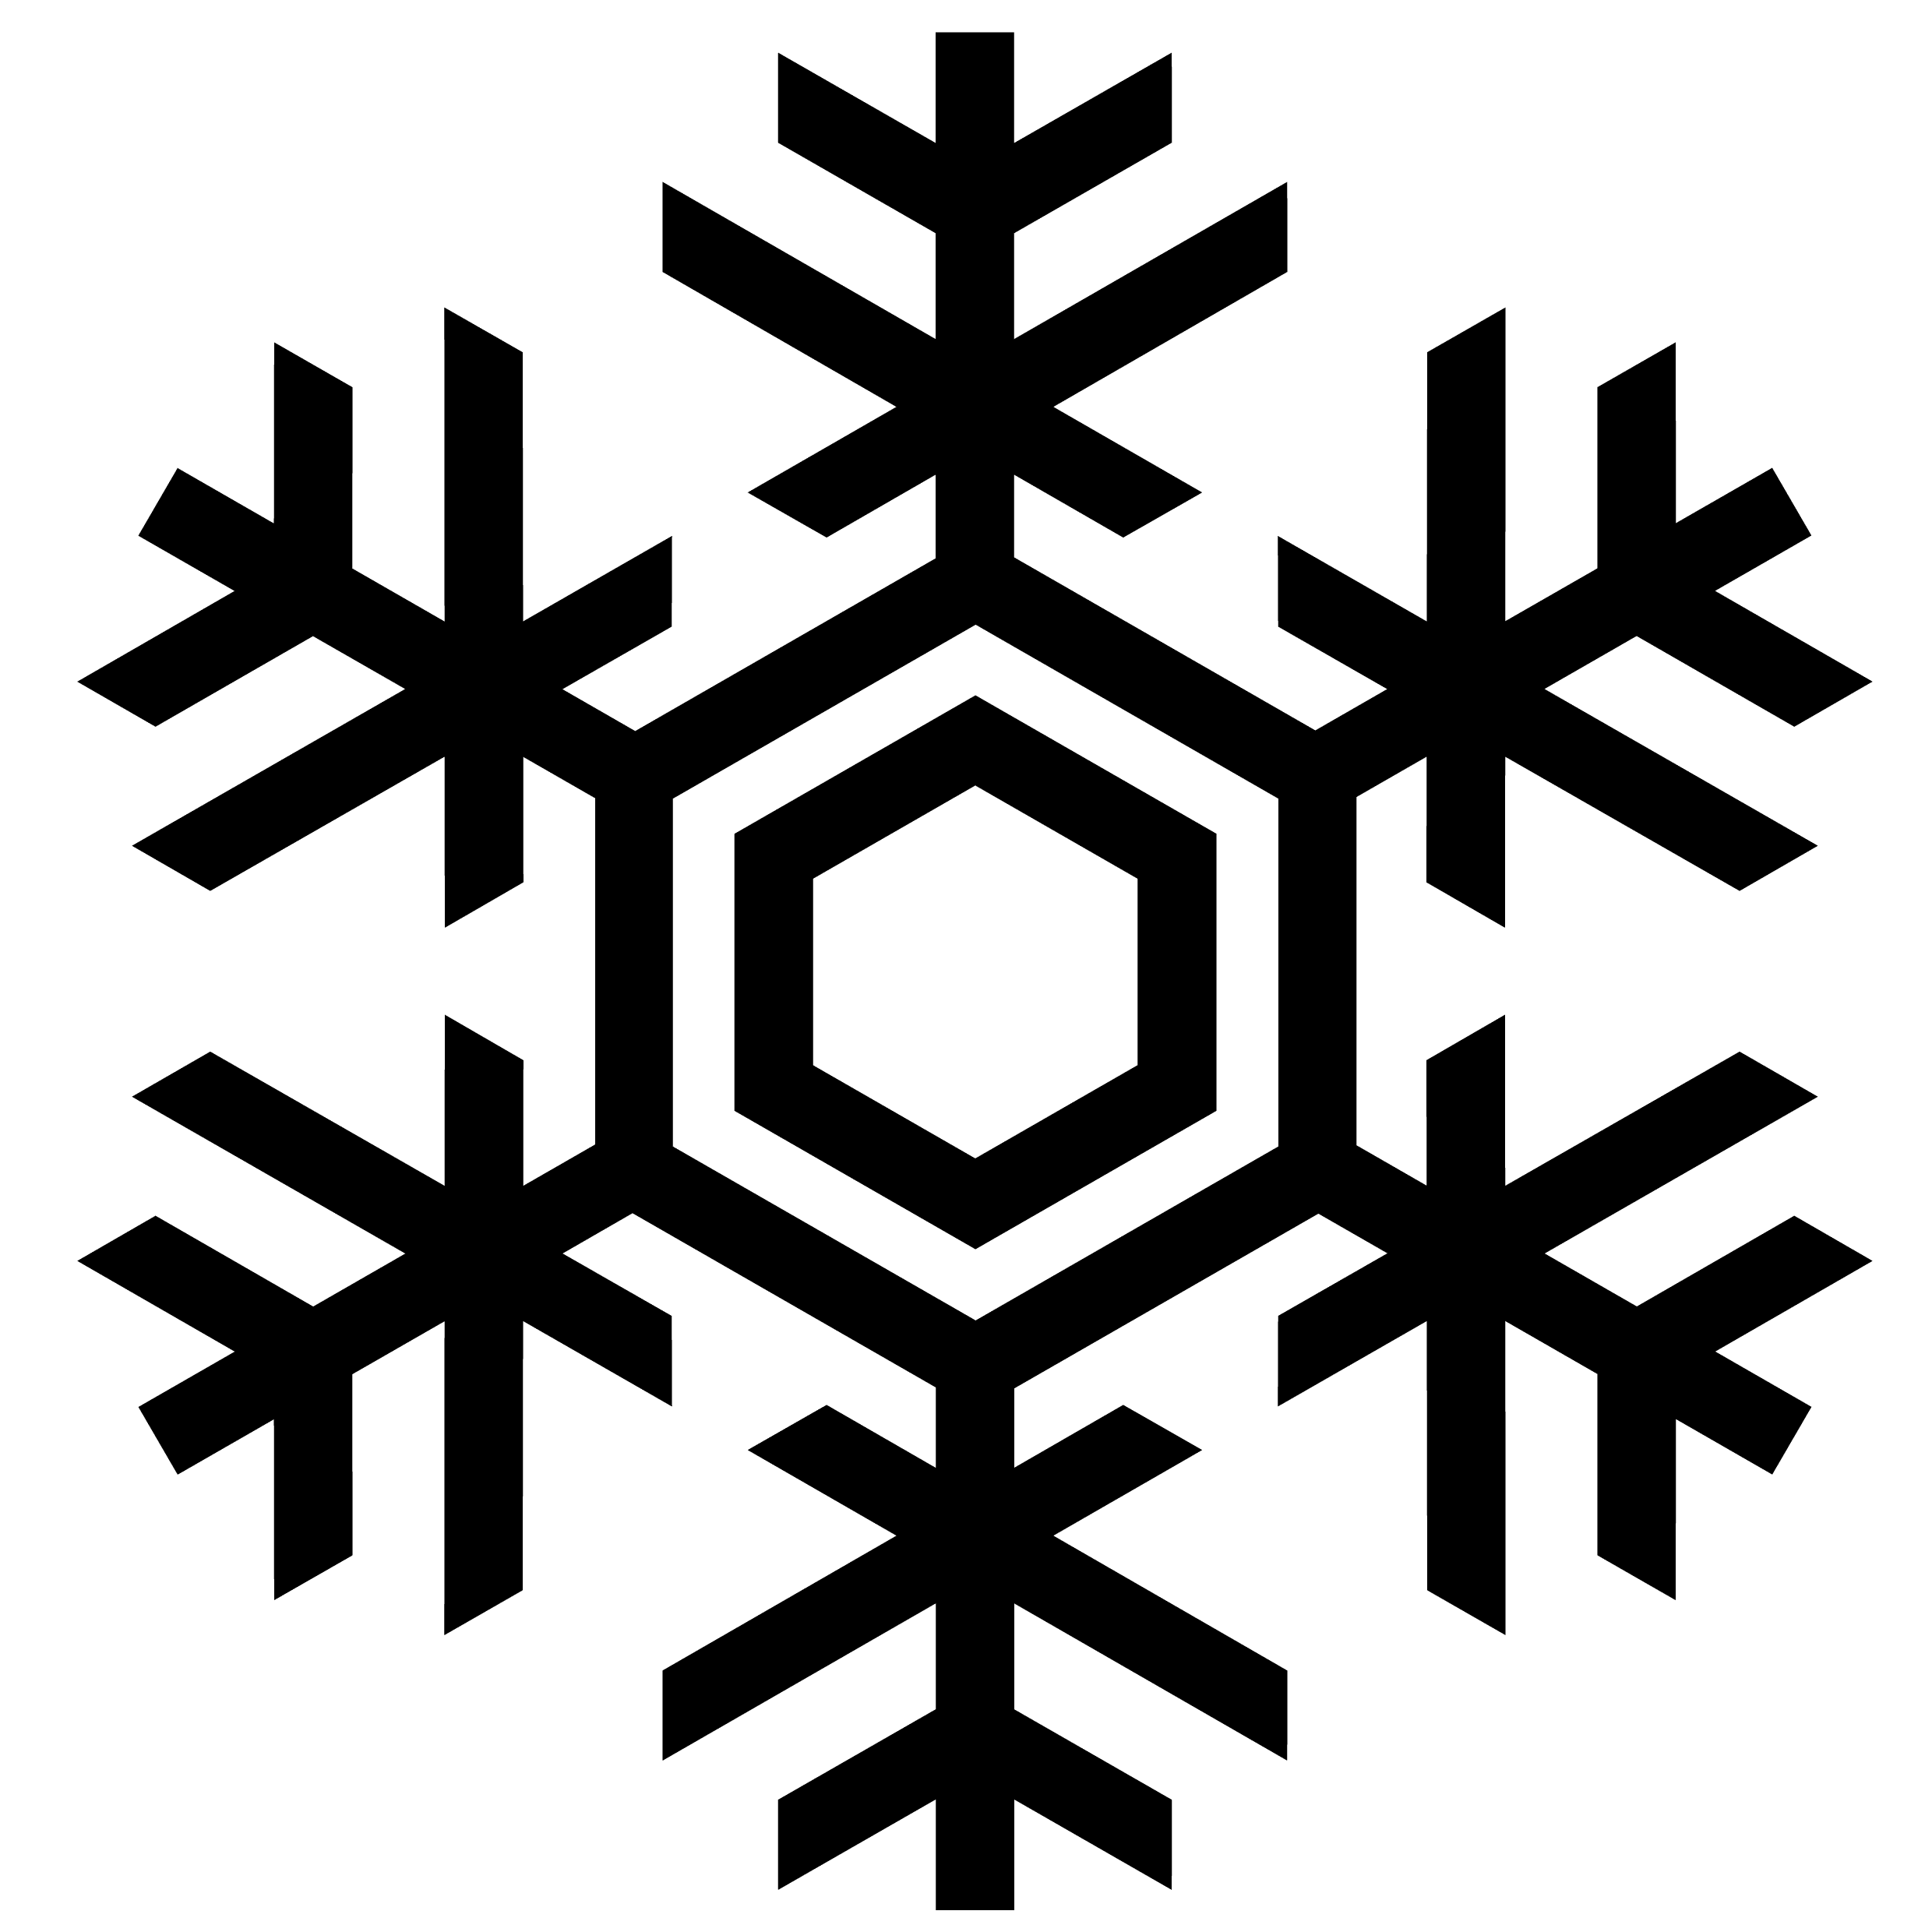 Snow clipart for photoshop clipart freeuse 52 Snowflakes Vectors, Silhouette and Photoshop Brushes for ... clipart freeuse